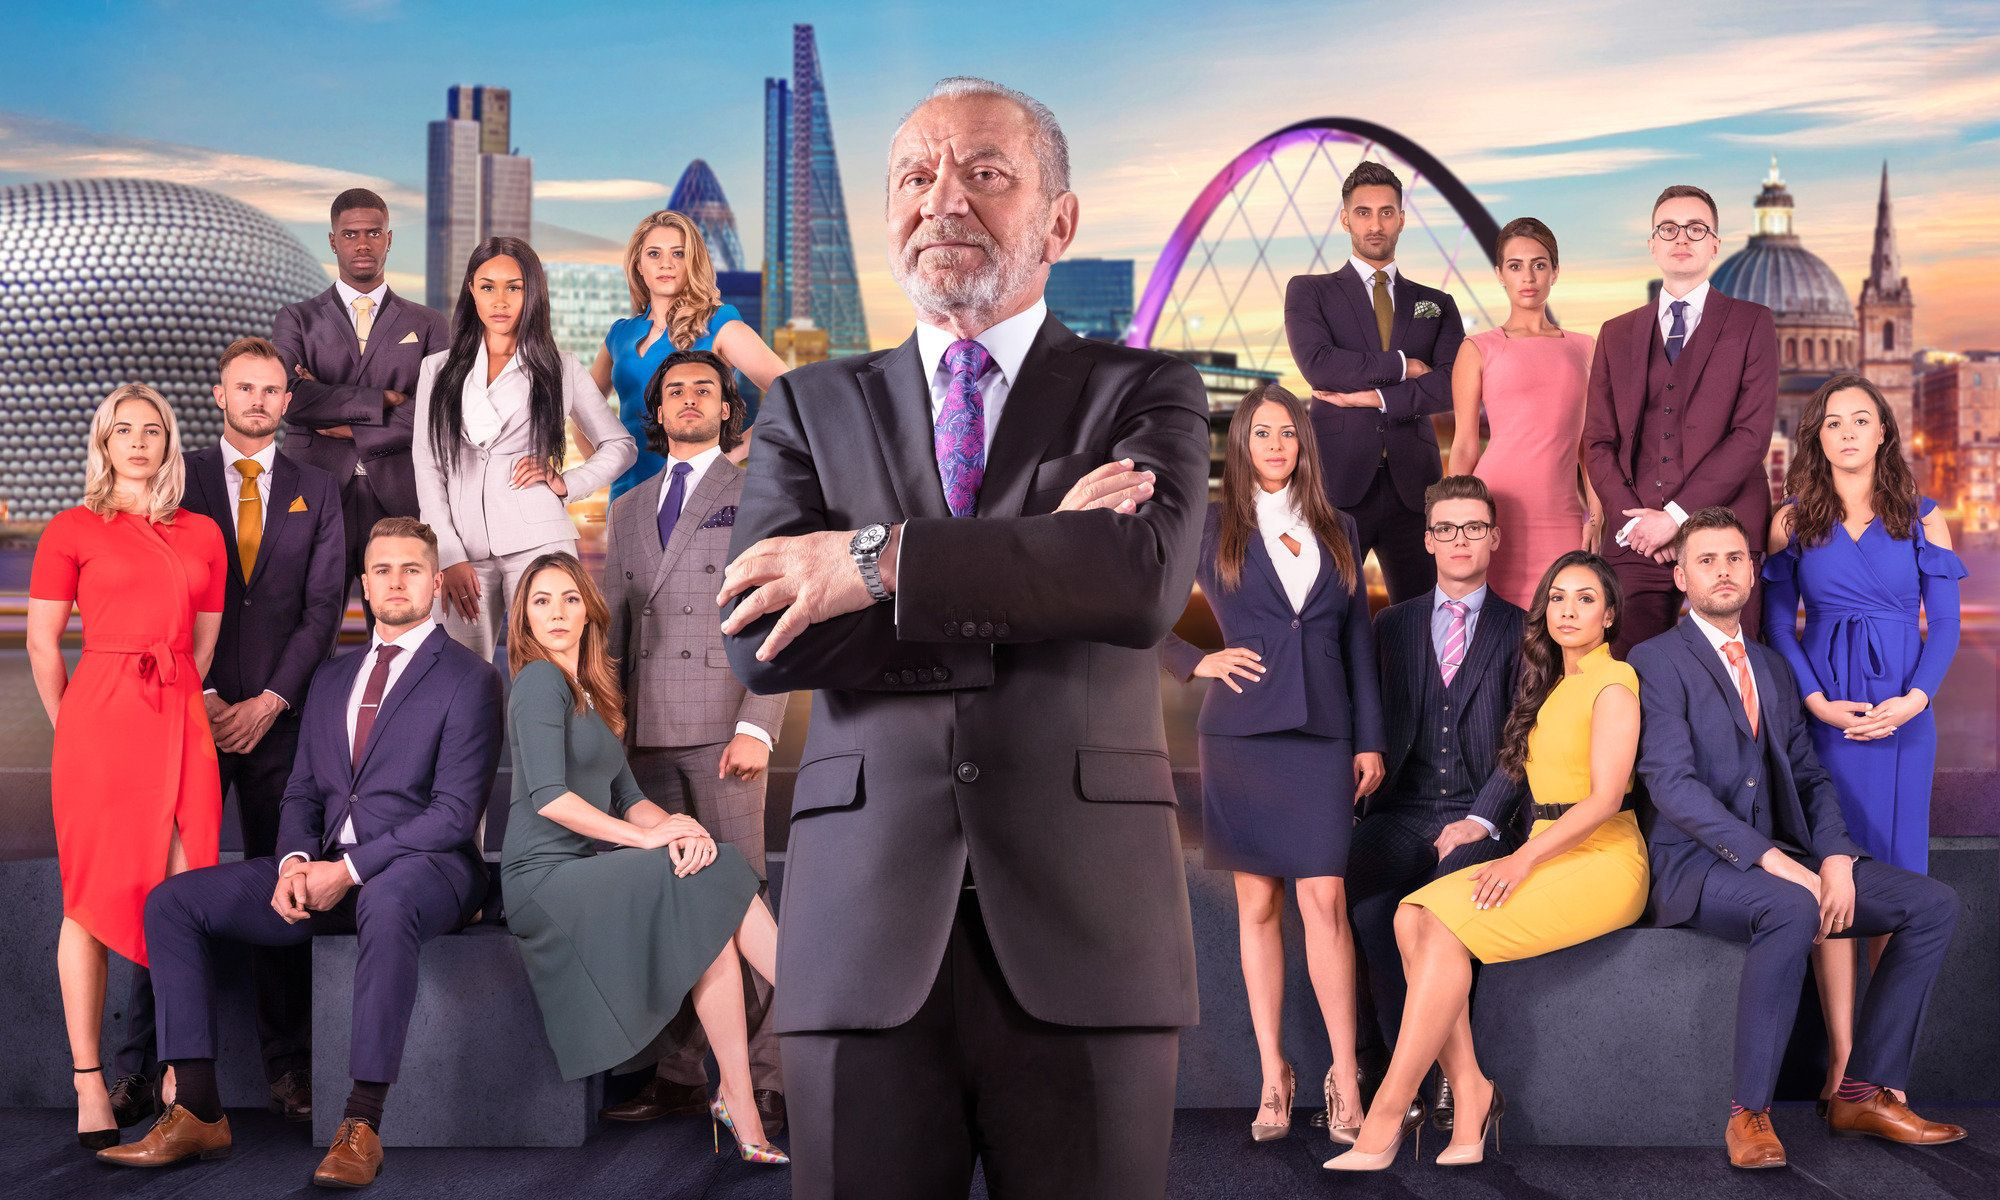 These Parodies Of 'Apprentice' Contestants' Introductory One-Liners Have Us